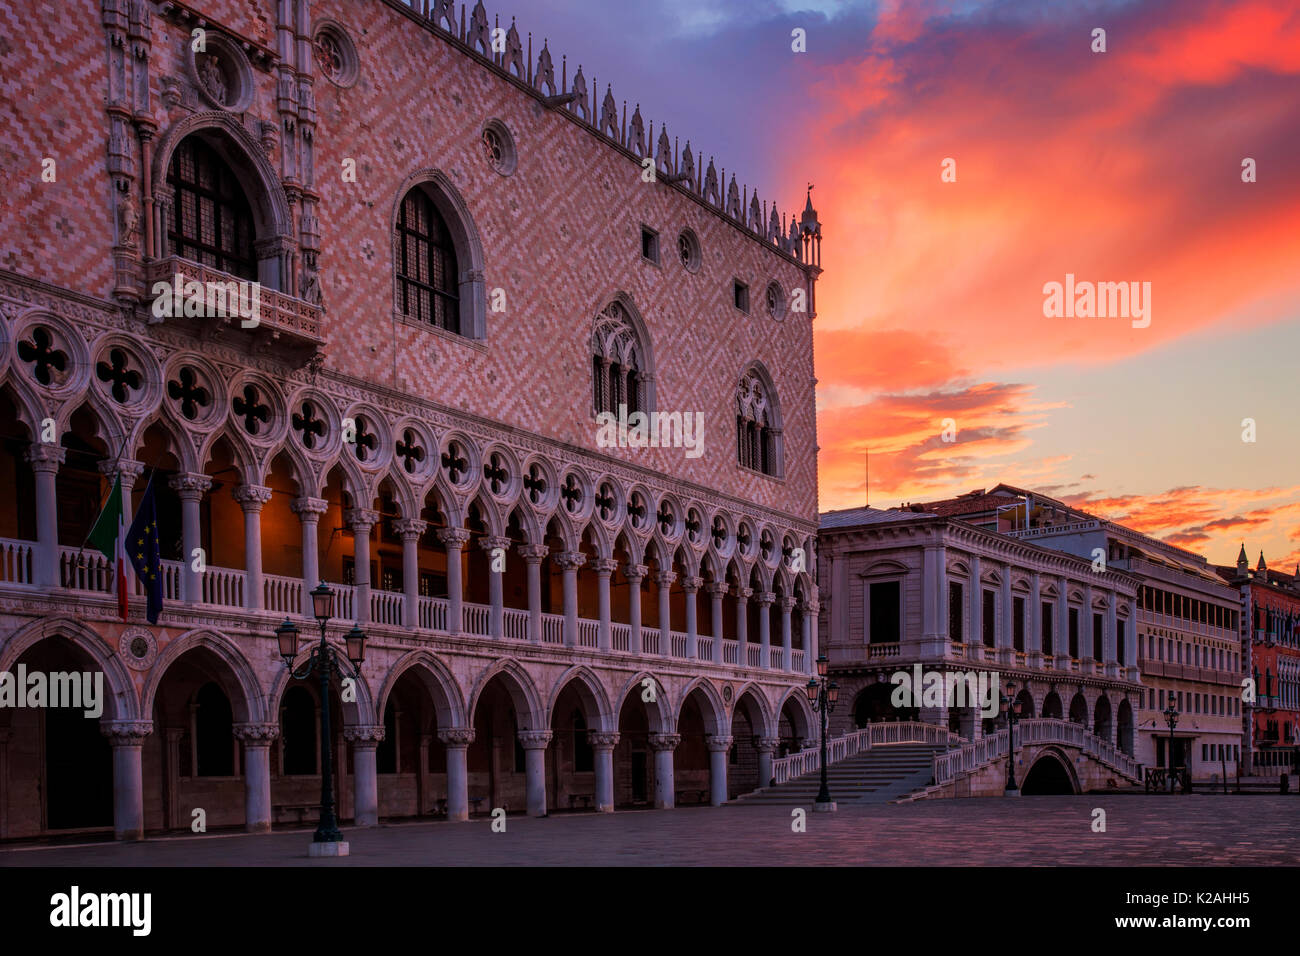 Dramatic clouds at sunrise over the Doges Palace In Venice, Italy - Stock Image